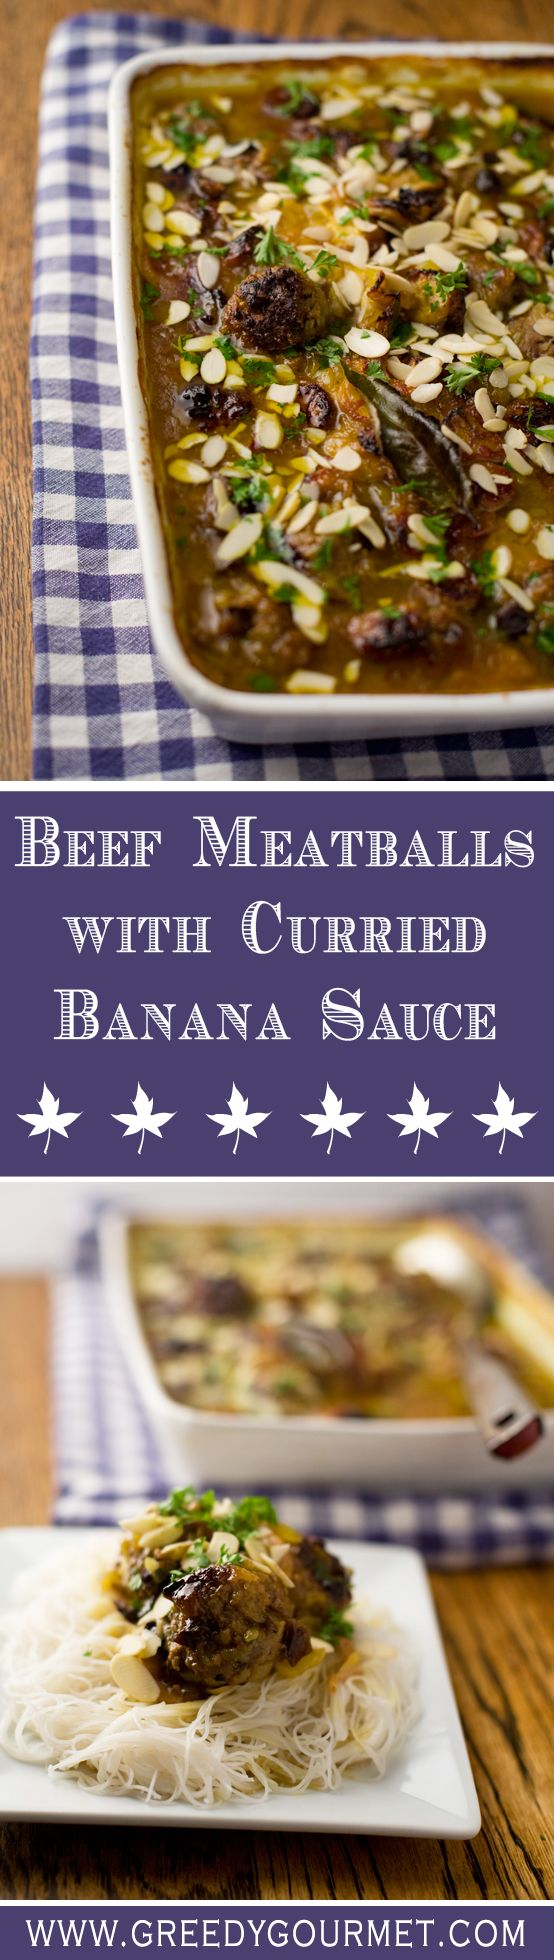 Beef Meatballs with Curried Banana Sauce - an interesting spin on South African cuisine.